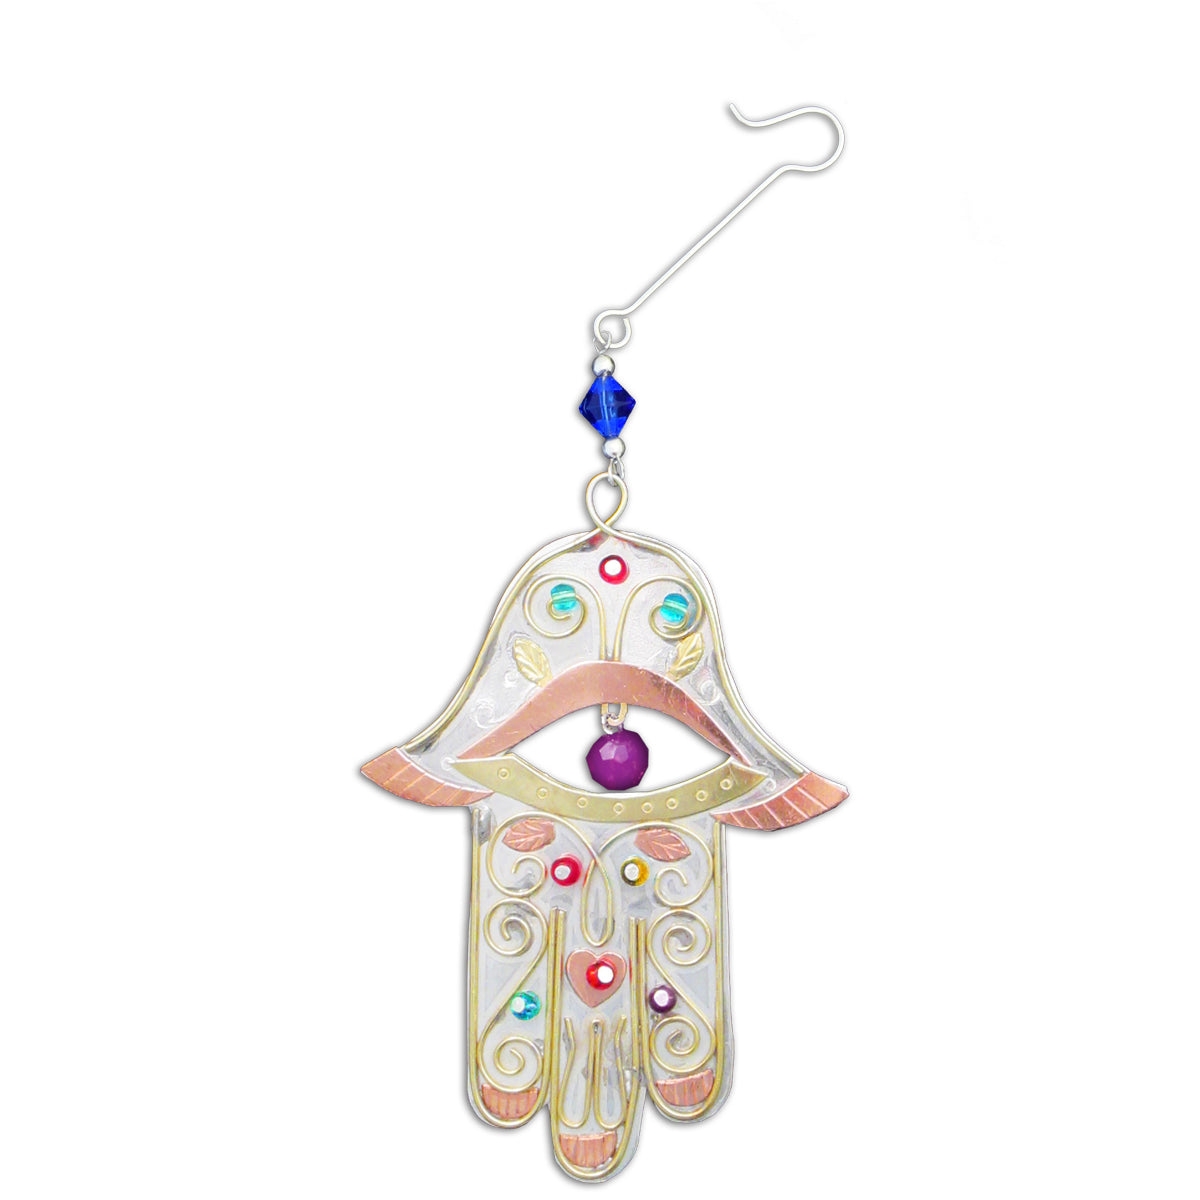 Peaceful Hamsa Ornament